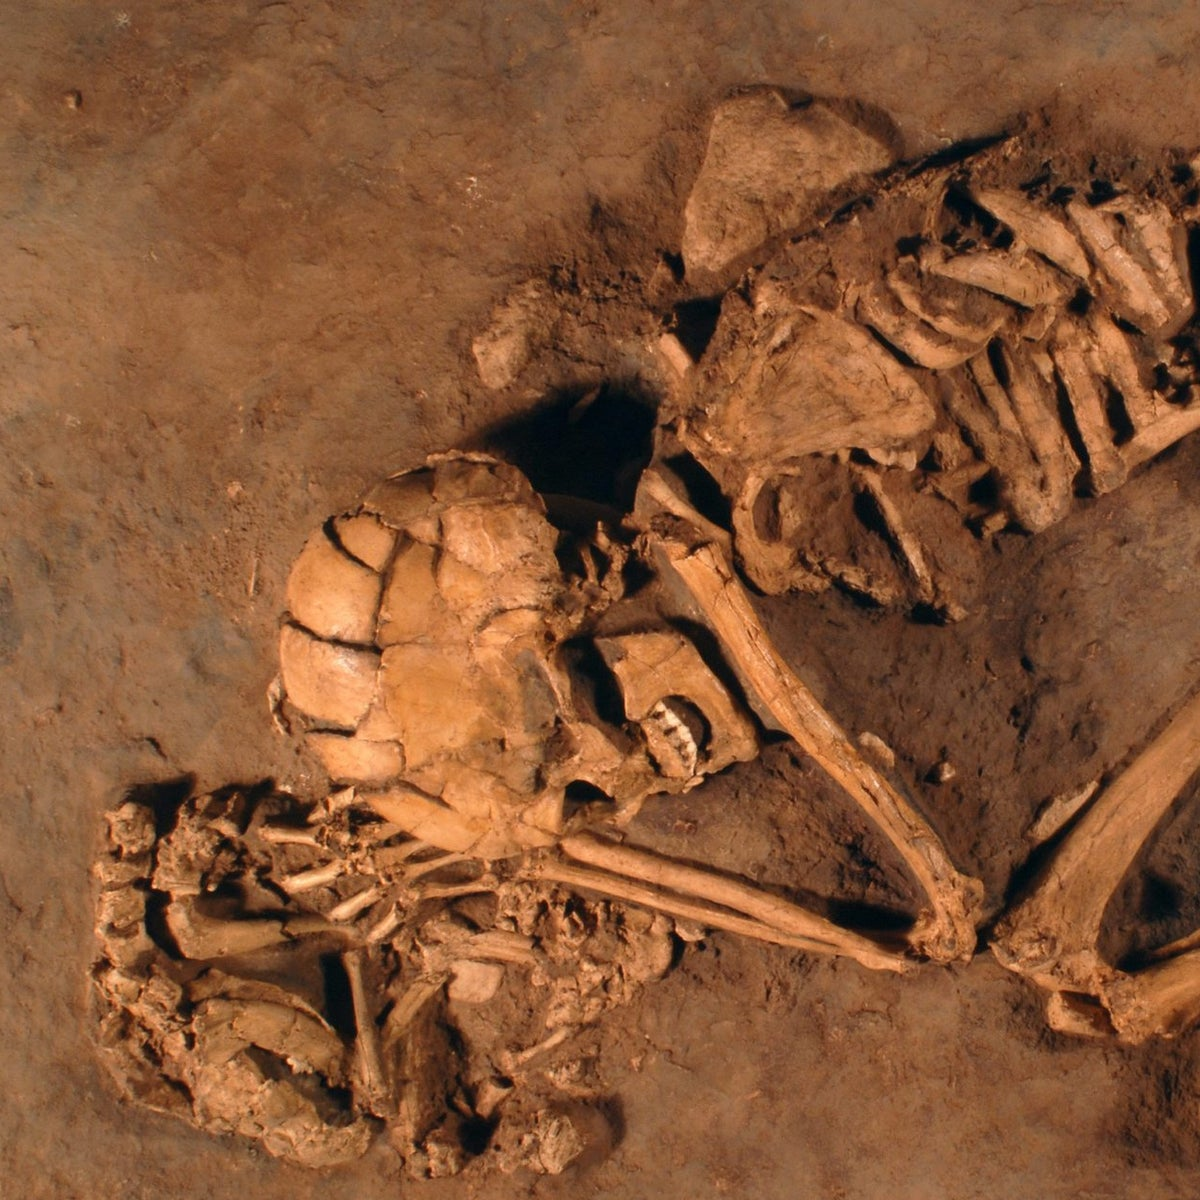 Cast of the Natufian woman buried with her hand resting on a pet puppy, Eynan, Israel